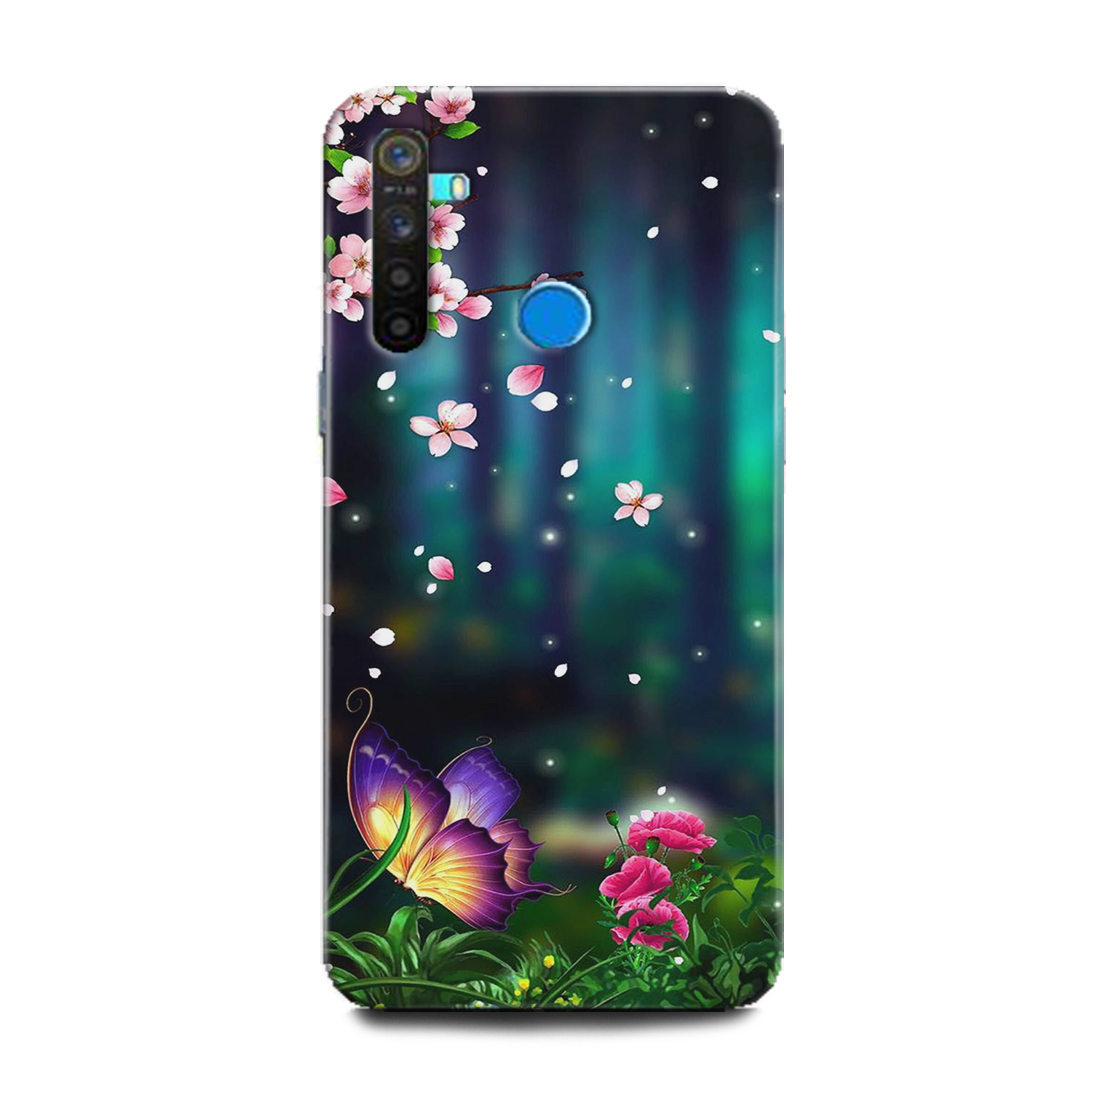 INDICRAFT Mobile Back Cover For Realme 5 Pro Hard Case (Flowers, Mandala, Colorful, Abstract Art, Texture, Ornaments, Painting, Nature, RMX1971) (AB-Realme5Pro-0658)